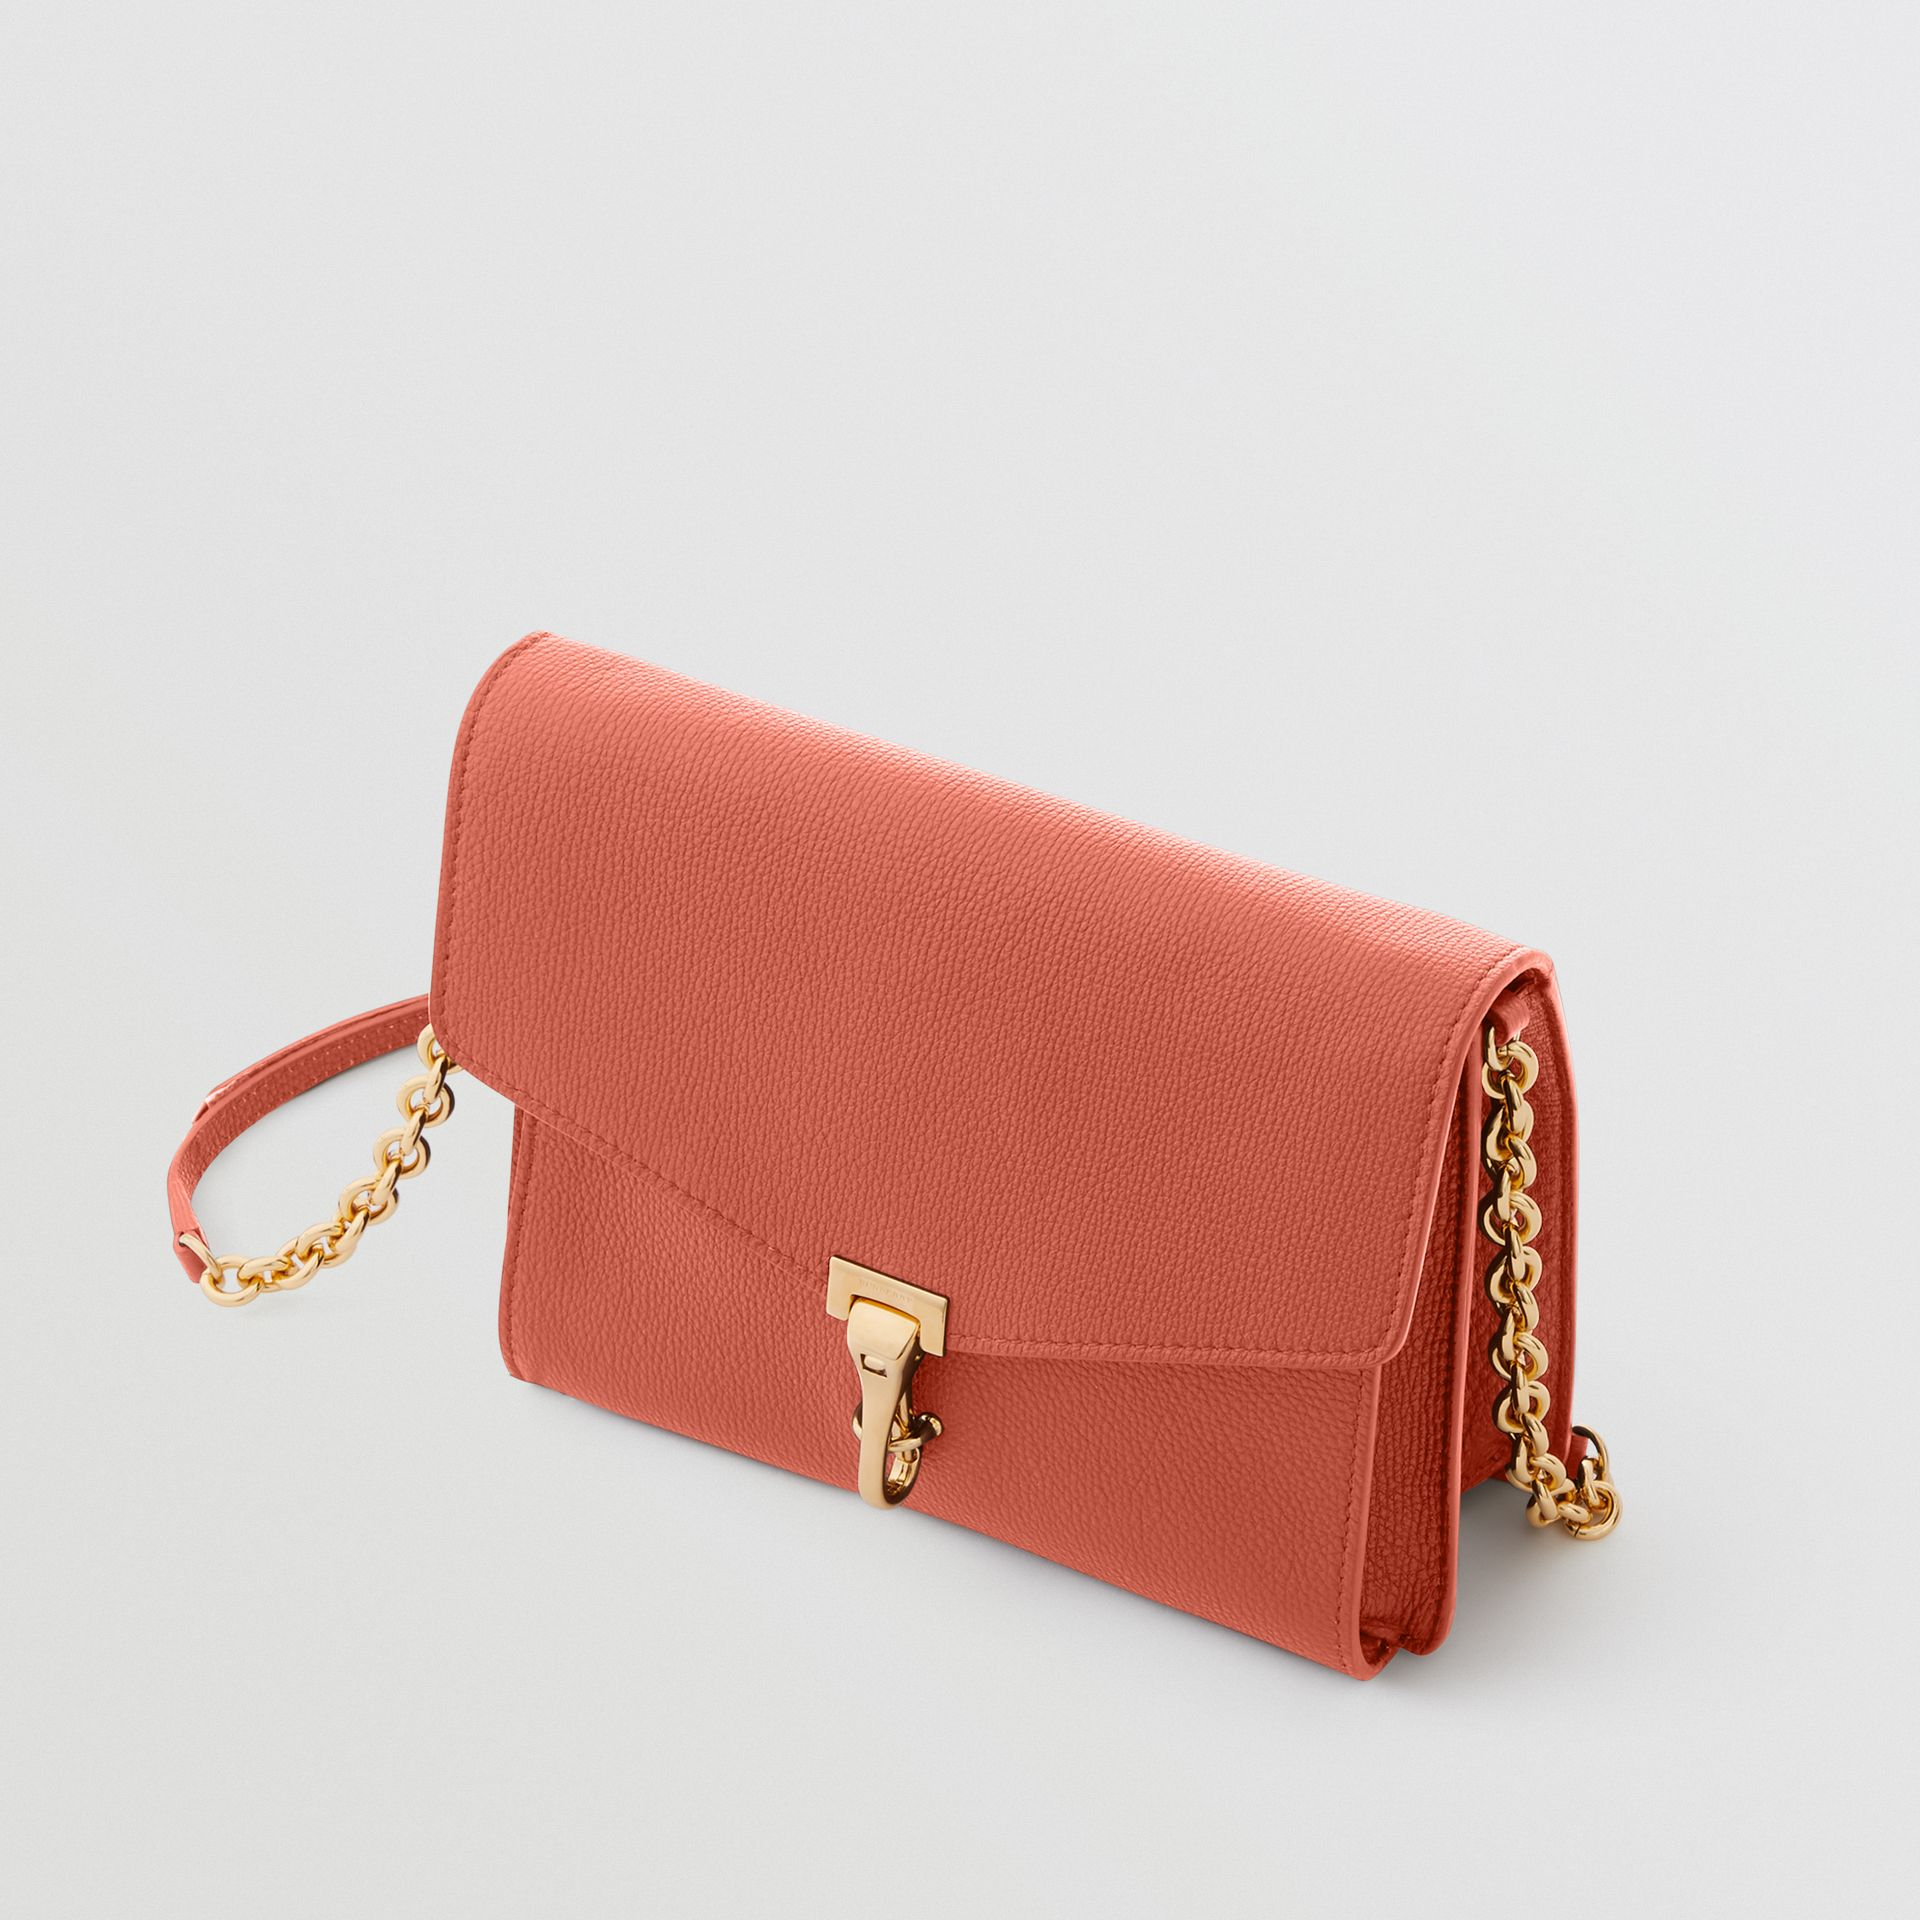 Small Leather Crossbody Bag in Cinnamon Red - Women | Burberry - gallery image 4